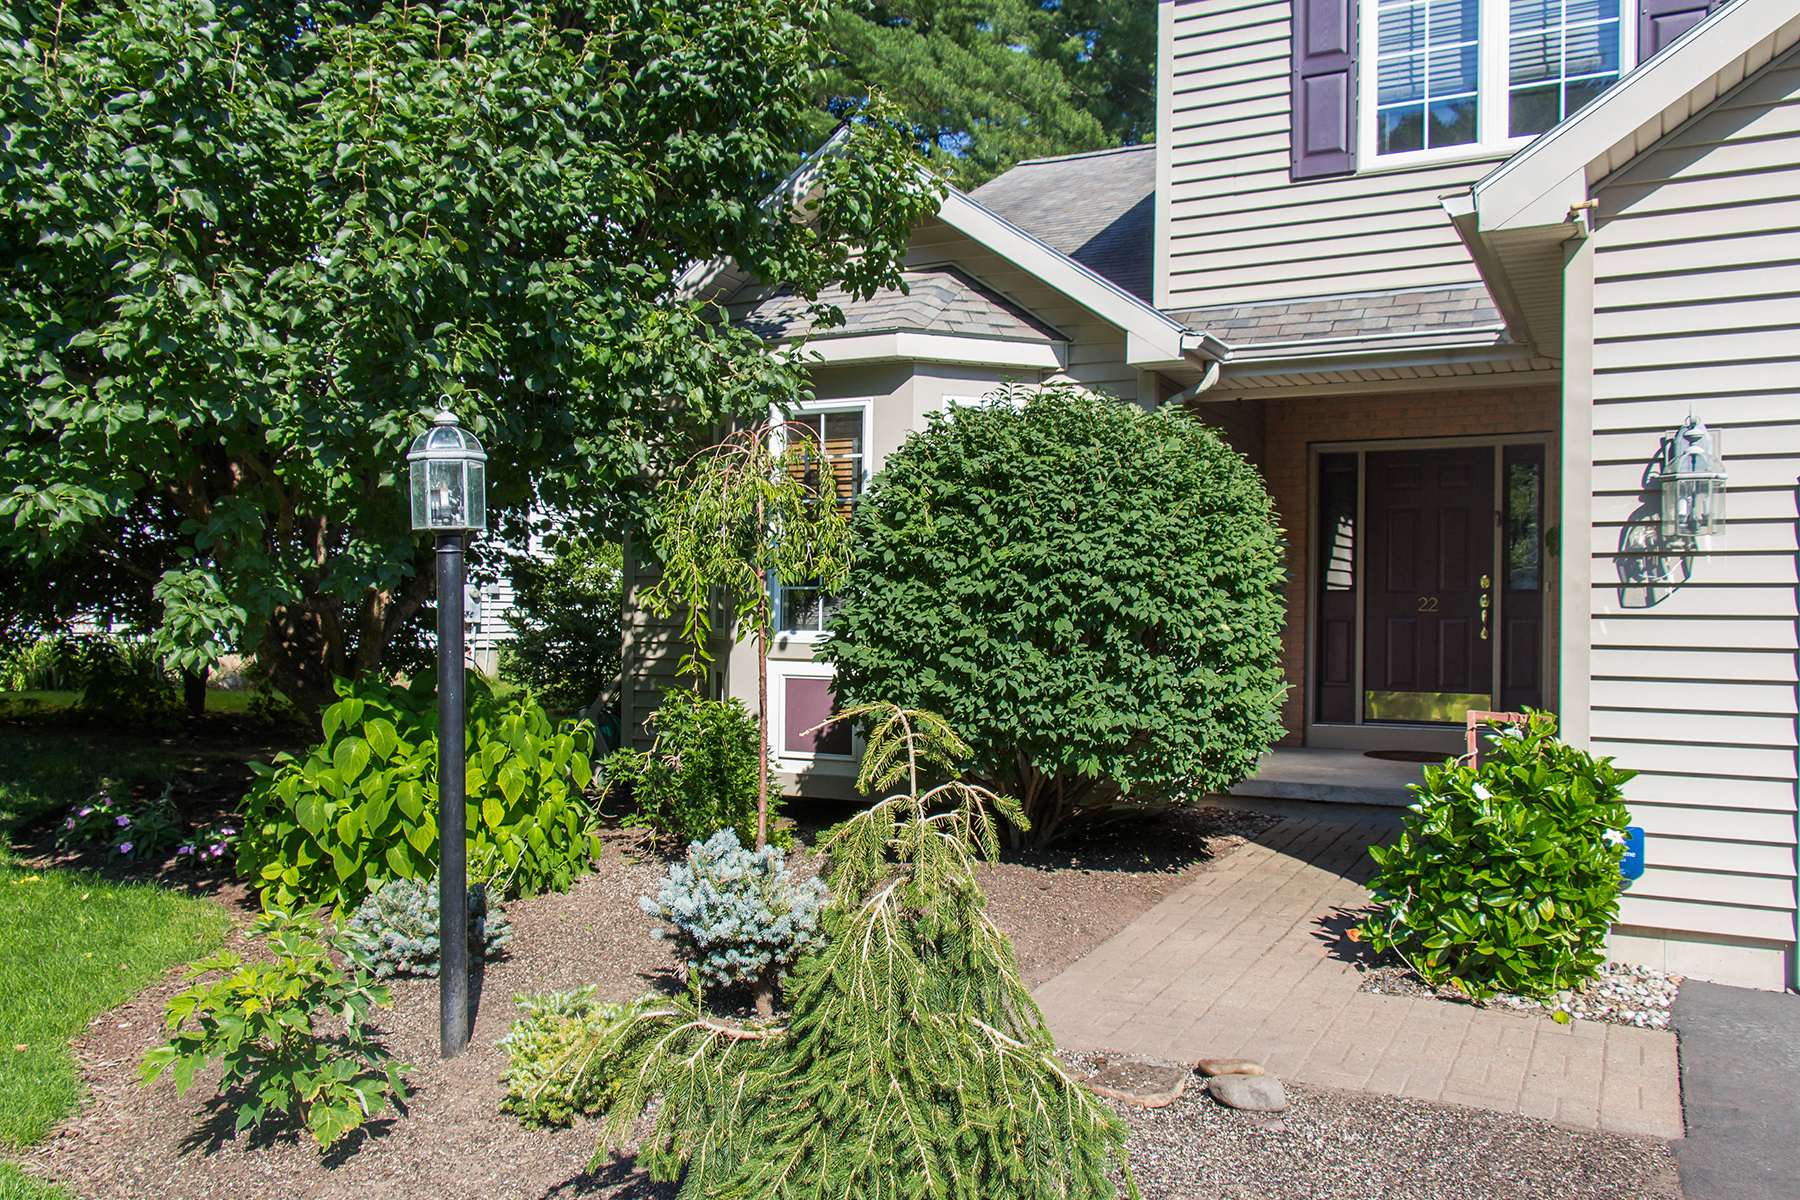 Additional photo for property listing at Summer Wind 22  Waterview Dr Saratoga Springs, New York 12866 United States